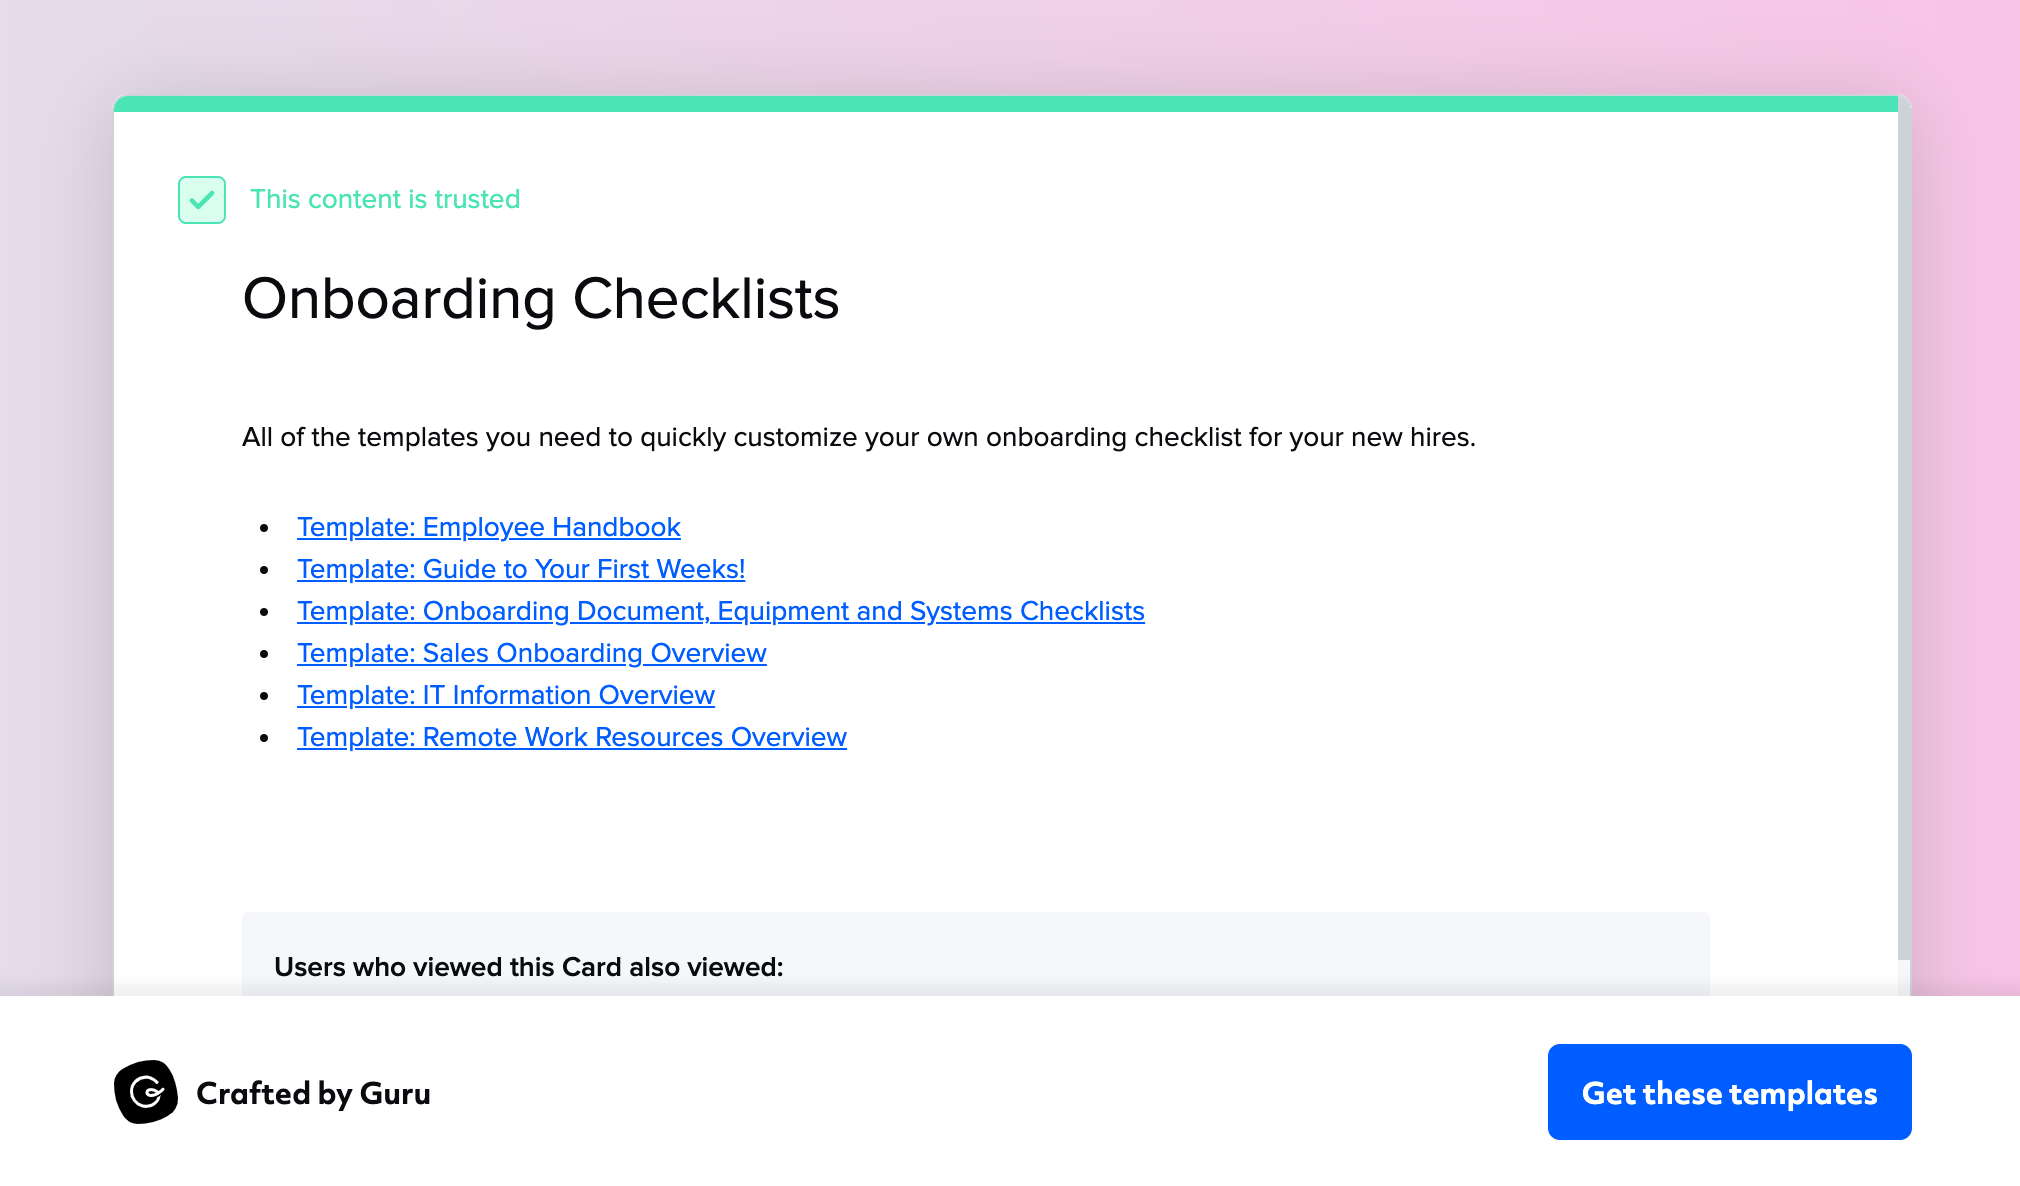 Onboarding Checklists and Templates